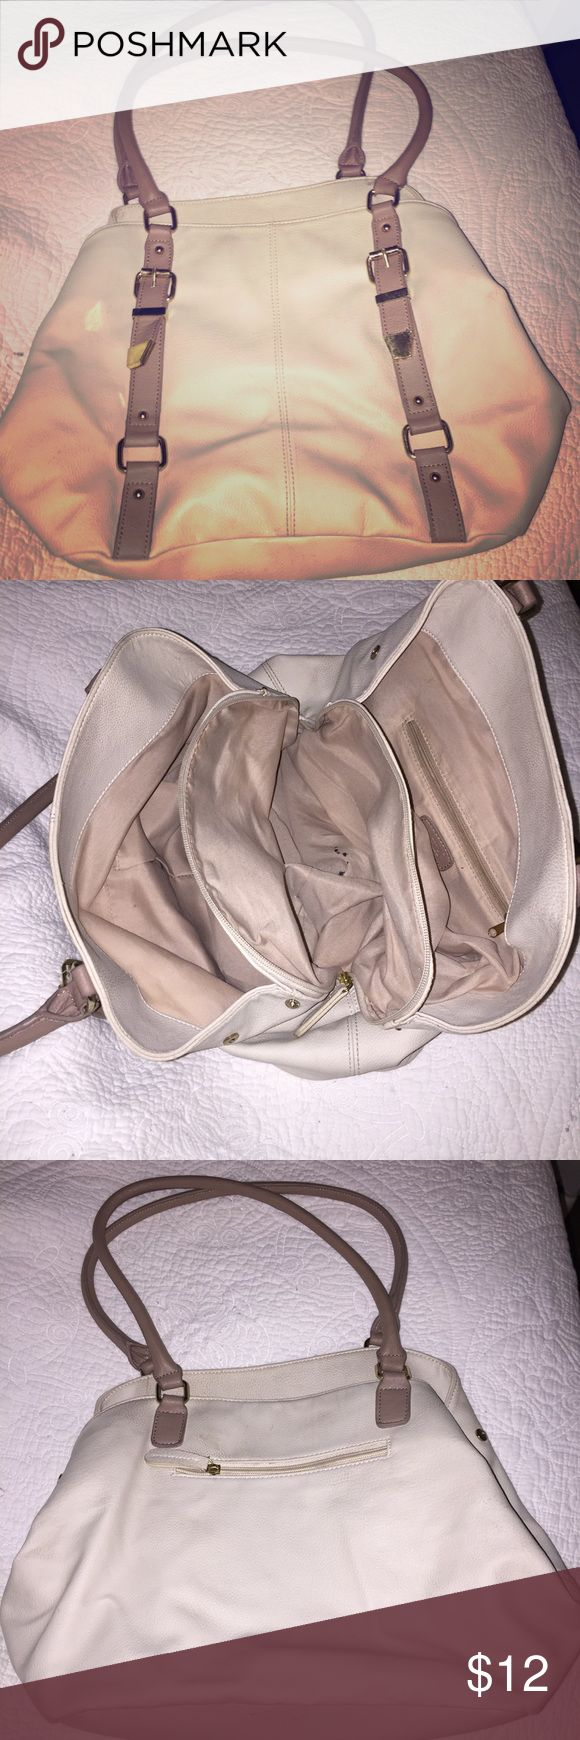 Apt 9 cream and gold purse! Perfect size straps👛 This purse is awesome because it is so easy to clean the outside! We all know we are Aleah's putting our purses on the floor/chairs/sinks!! Throw it in the wash or just use water and it rinses right off! Lots of storage for those of us who carry our whole bathroom in our purse! However, the inside does have a pen stain I was unable to remove, other then that.. great condition! Apt. 9 Bags Shoulder Bags